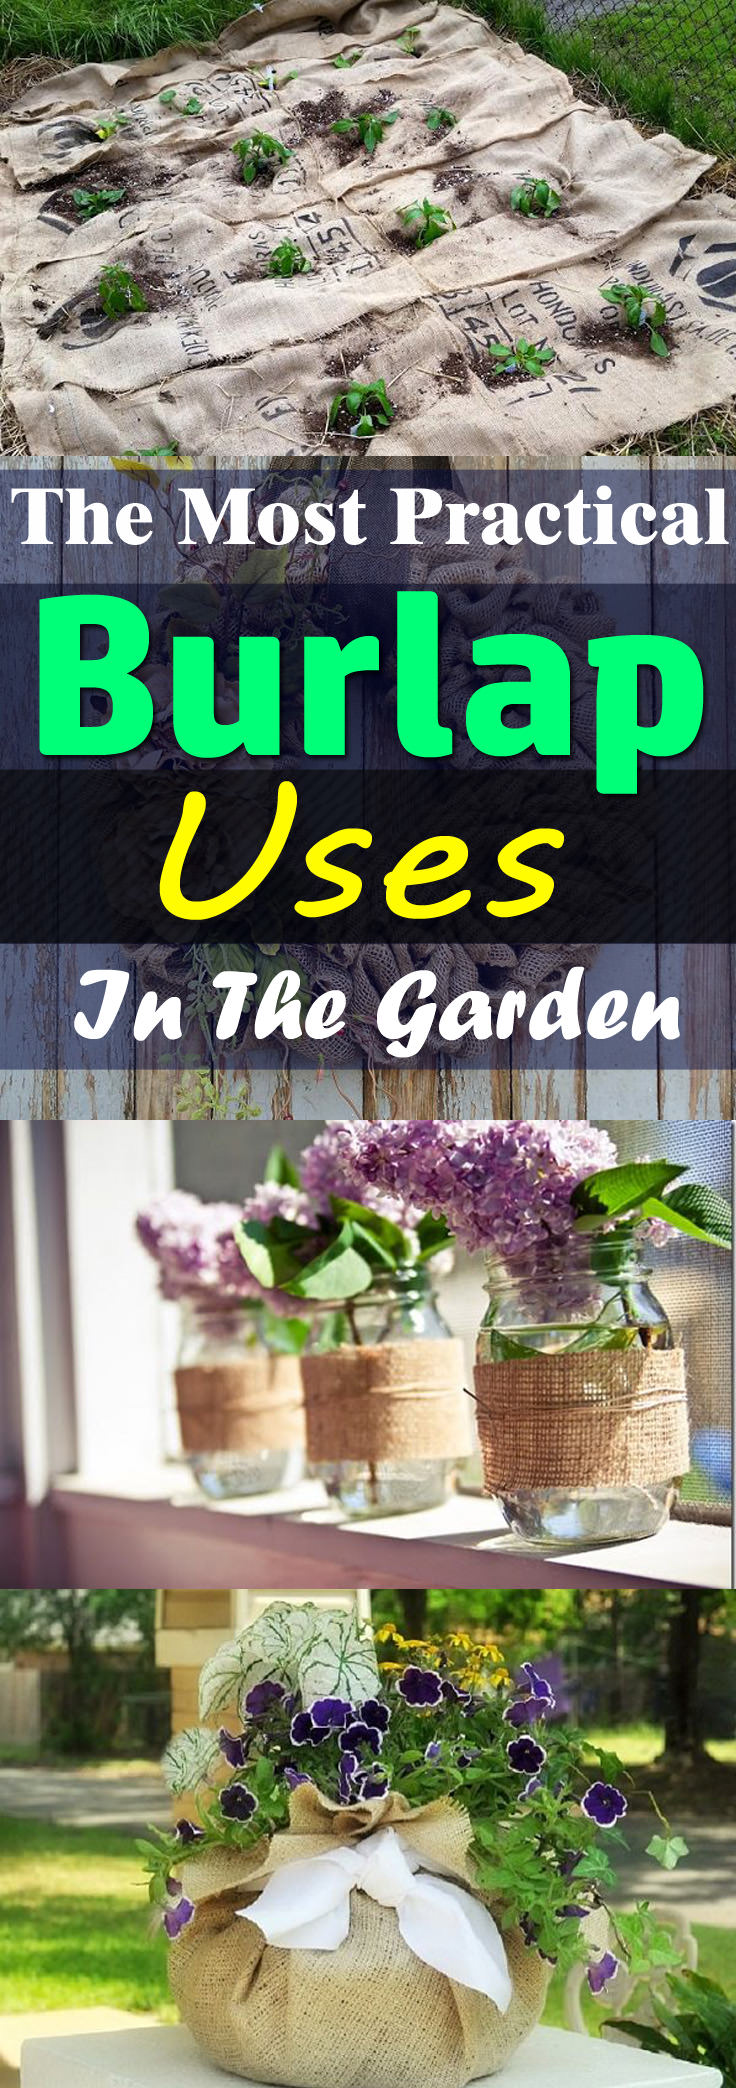 From the most practical burlap uses to the DIY and crafts for home and garden, the inexpensive burlap can be really useful. Check out!